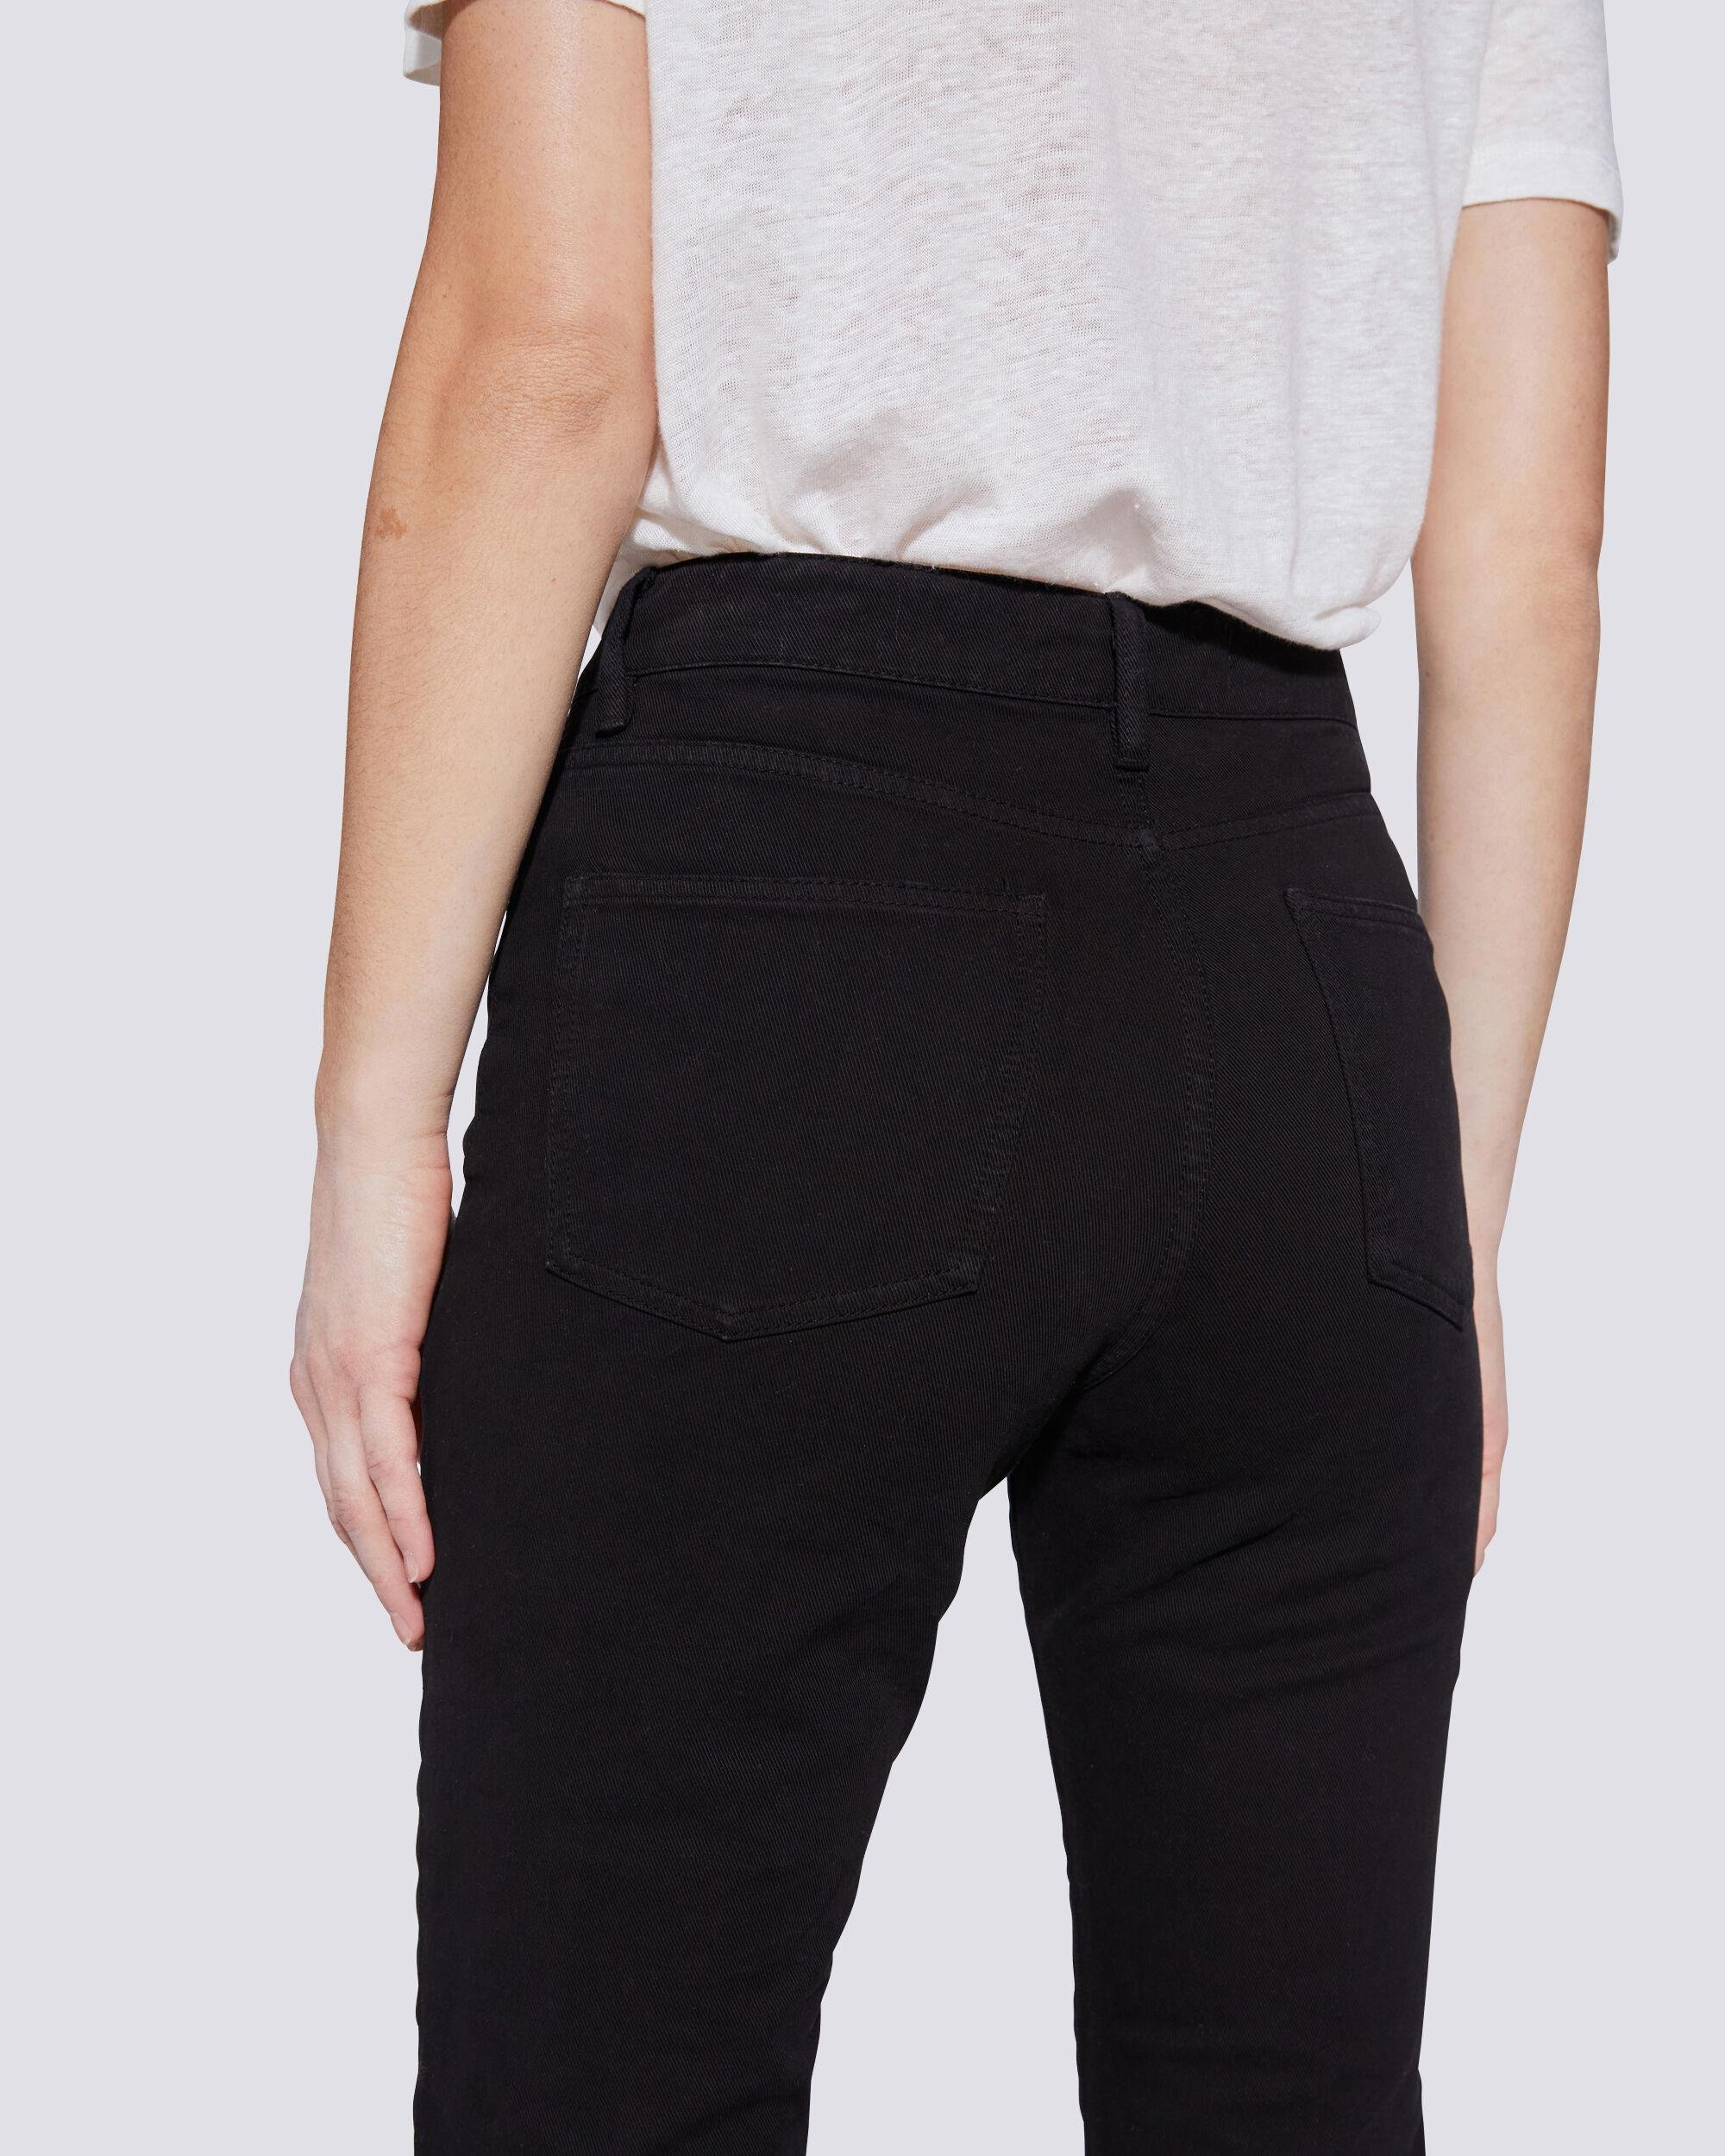 ESME HIGH RISE BUTTON FRONT CROPPED JEANS 4